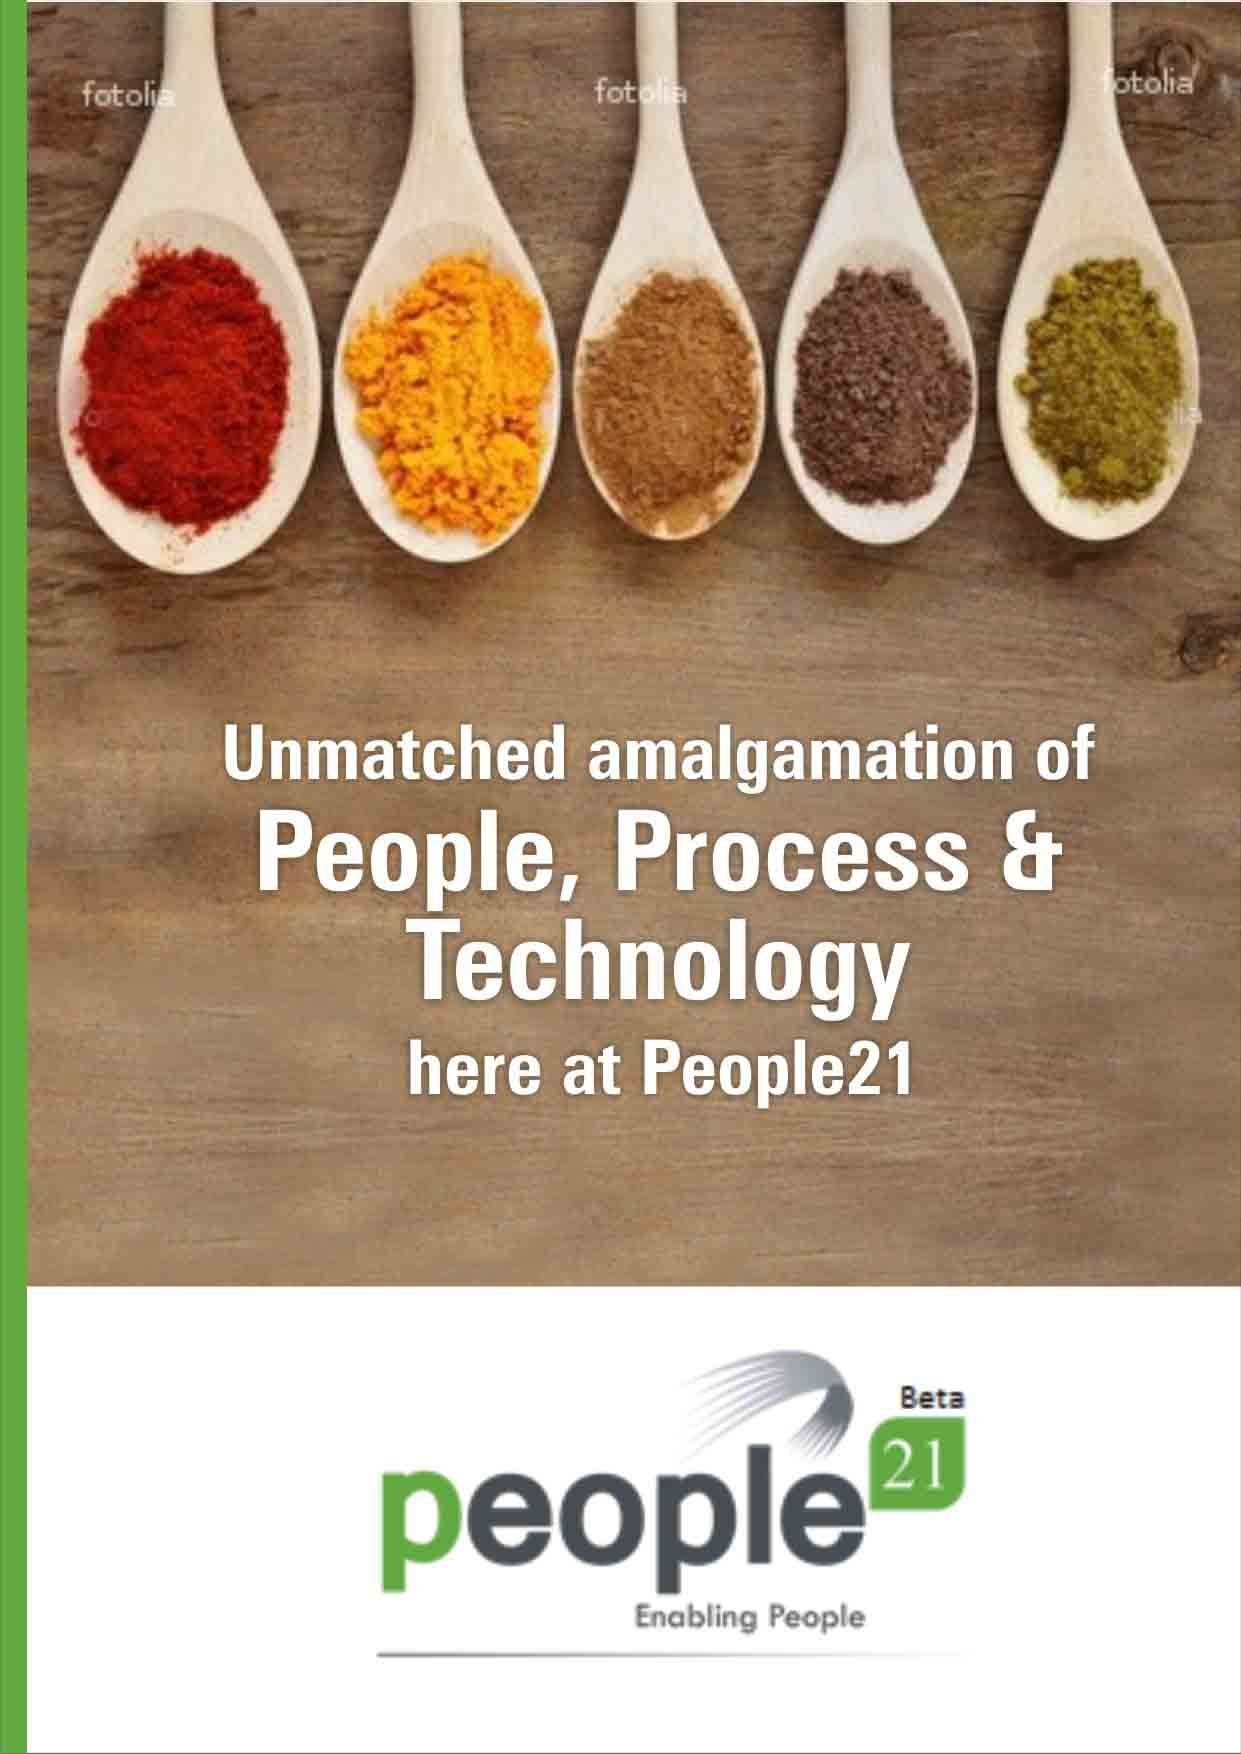 Poster designed for People21, Hyderabad, India